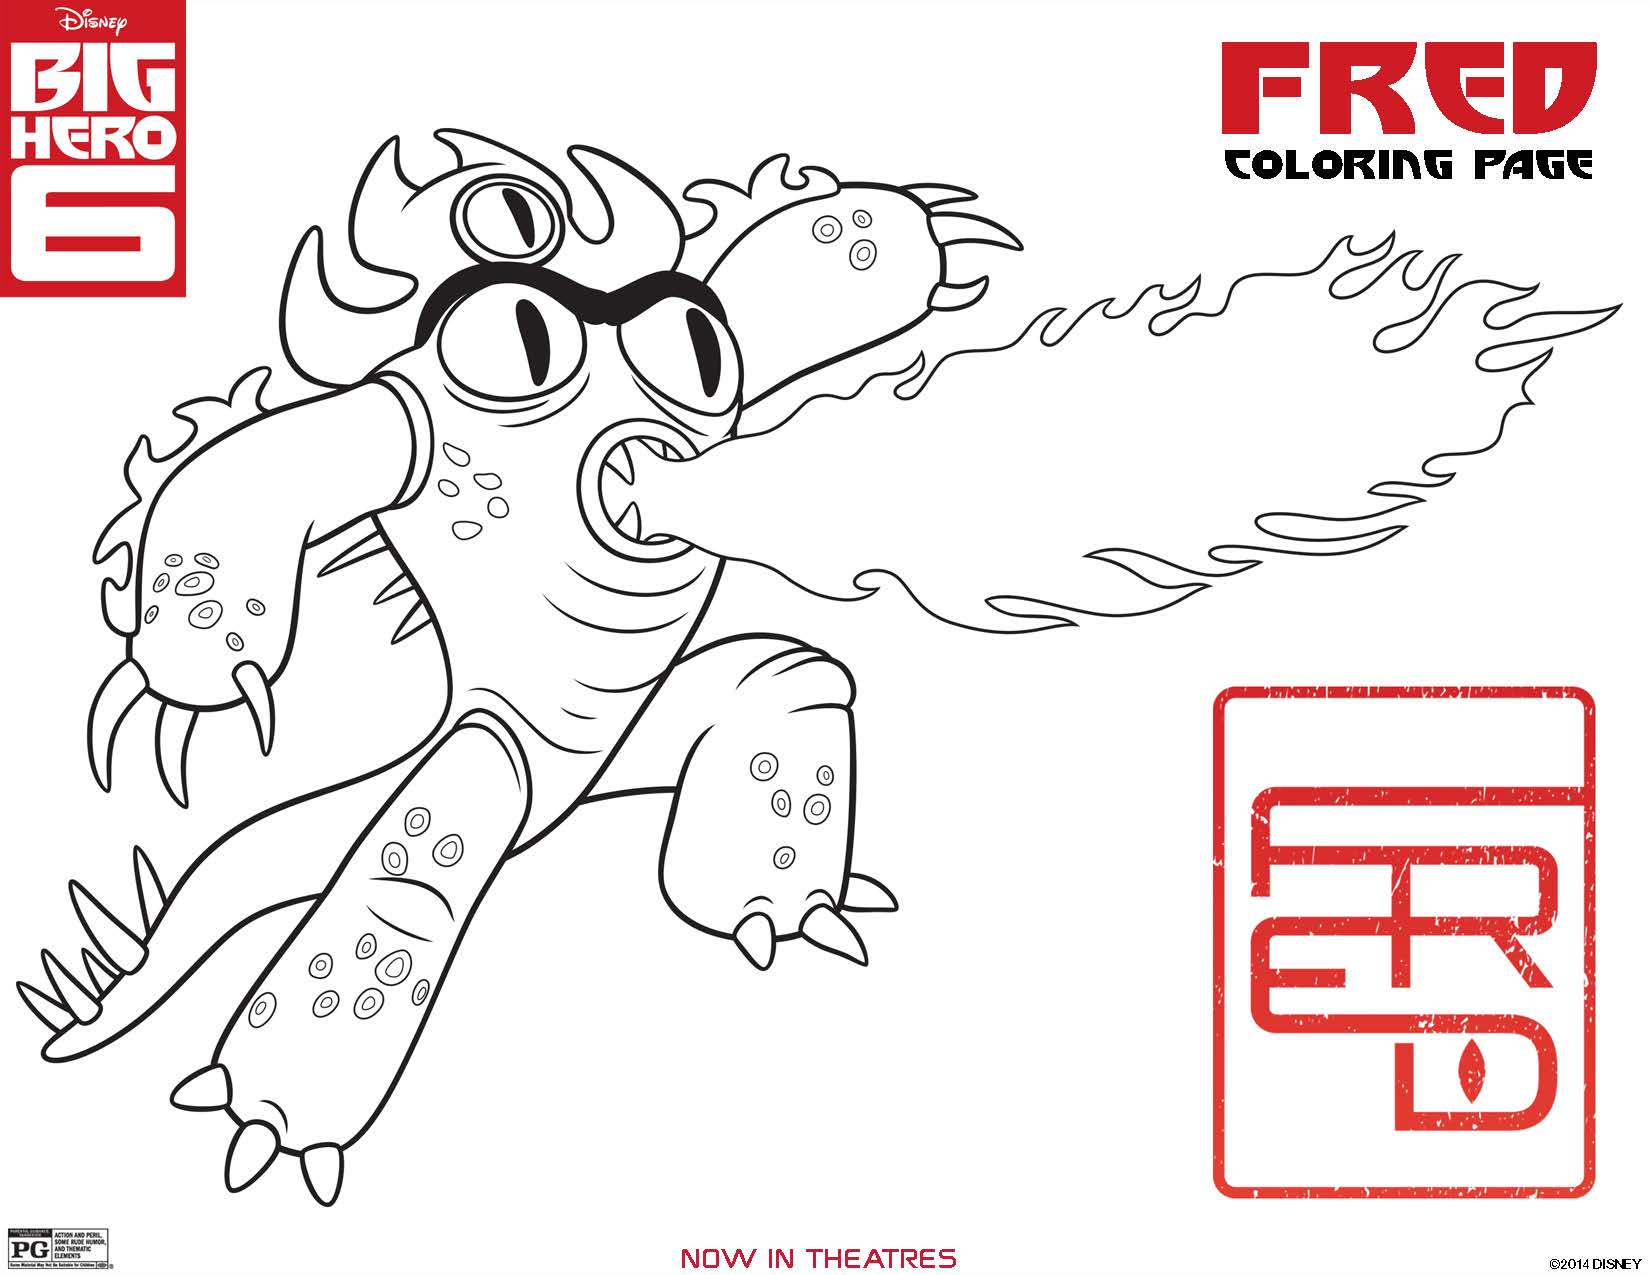 Big Hero 6 Coloring Pages Fred Page